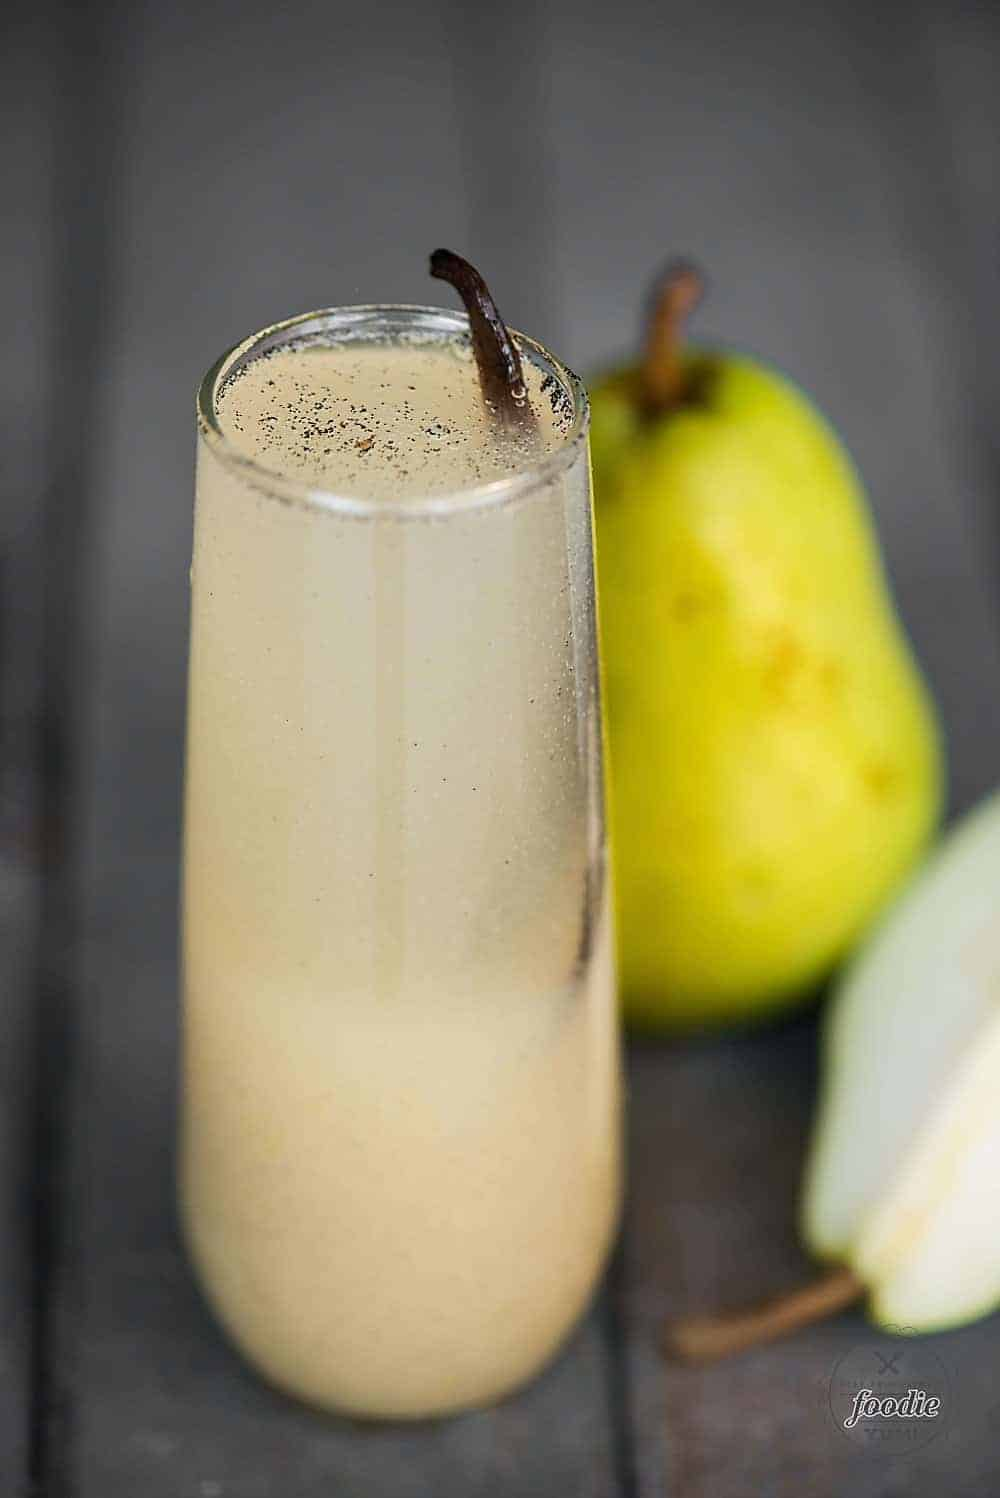 Vanilla Pear Prosecco, made with fresh pears, whole vanilla beans, and a crisp bubbly Prosecco, is the perfect fall and winter holiday cocktail!